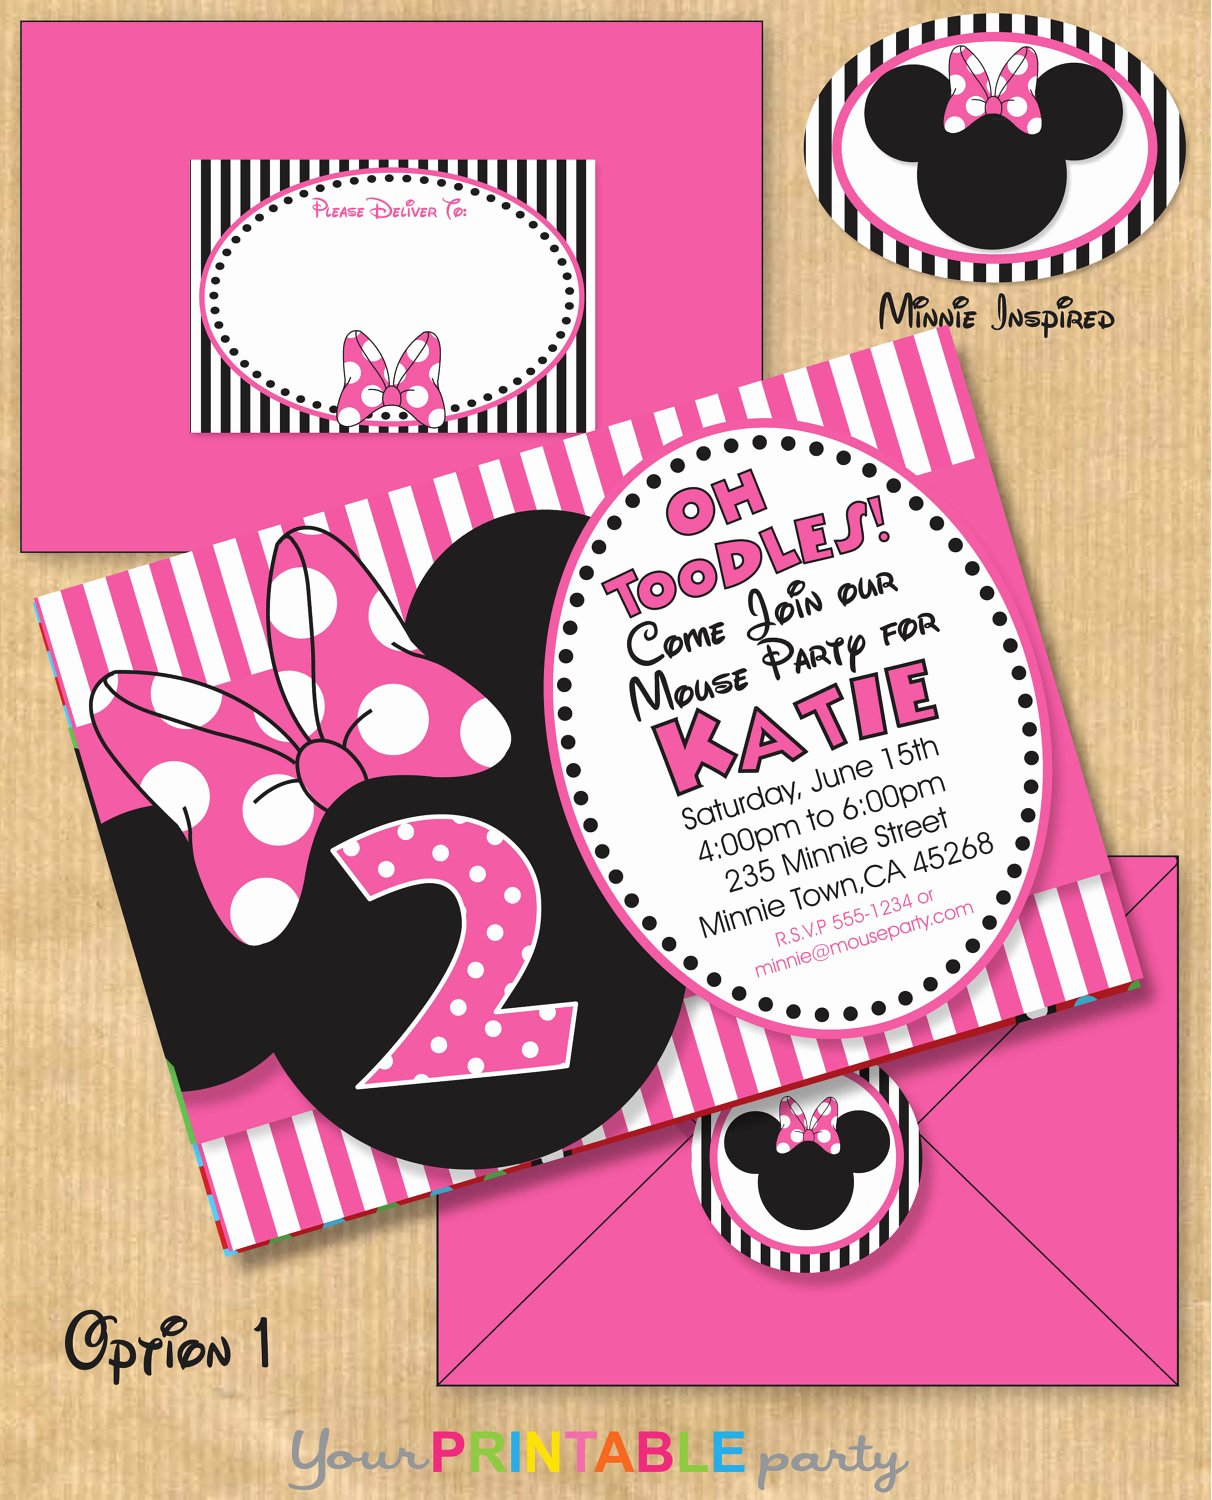 Minnie Mouse Birthday Invitation Awesome Minnie Mouse Inspired Birthday Party by Yourprintableparty On Etsy